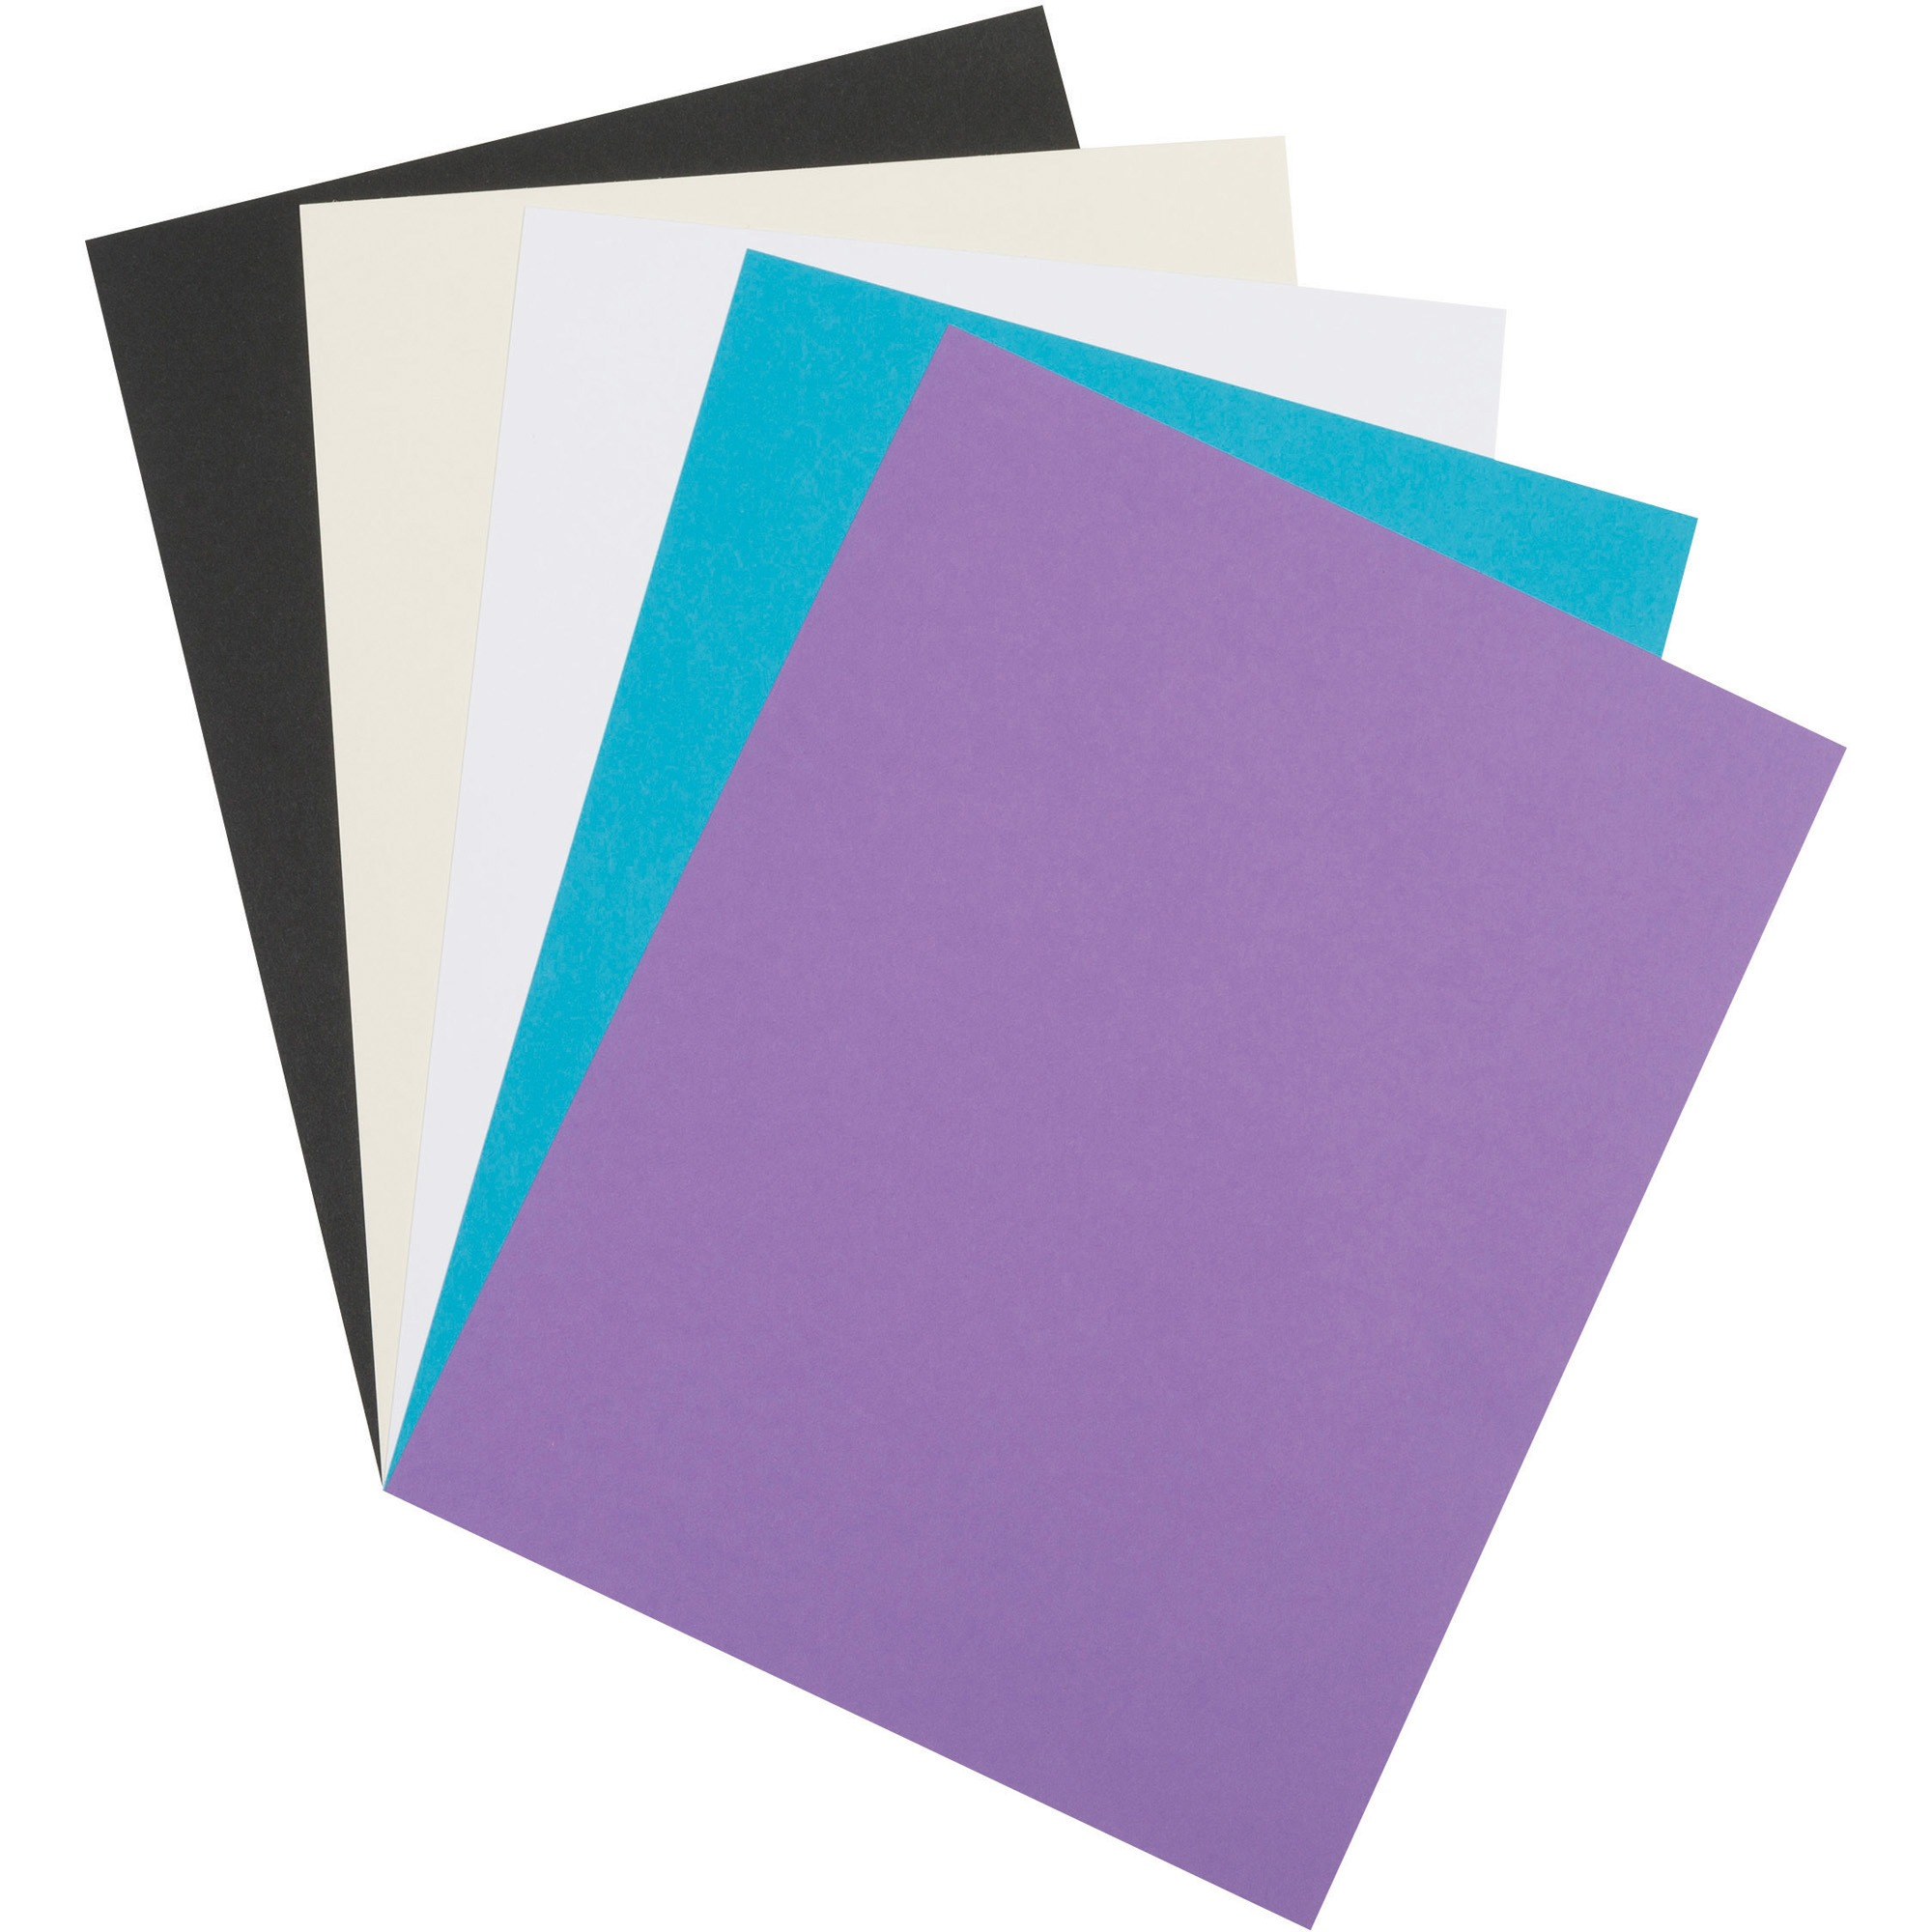 Array Card Stock, Classic Colors, 100 SHeets by PACON CORPORATION